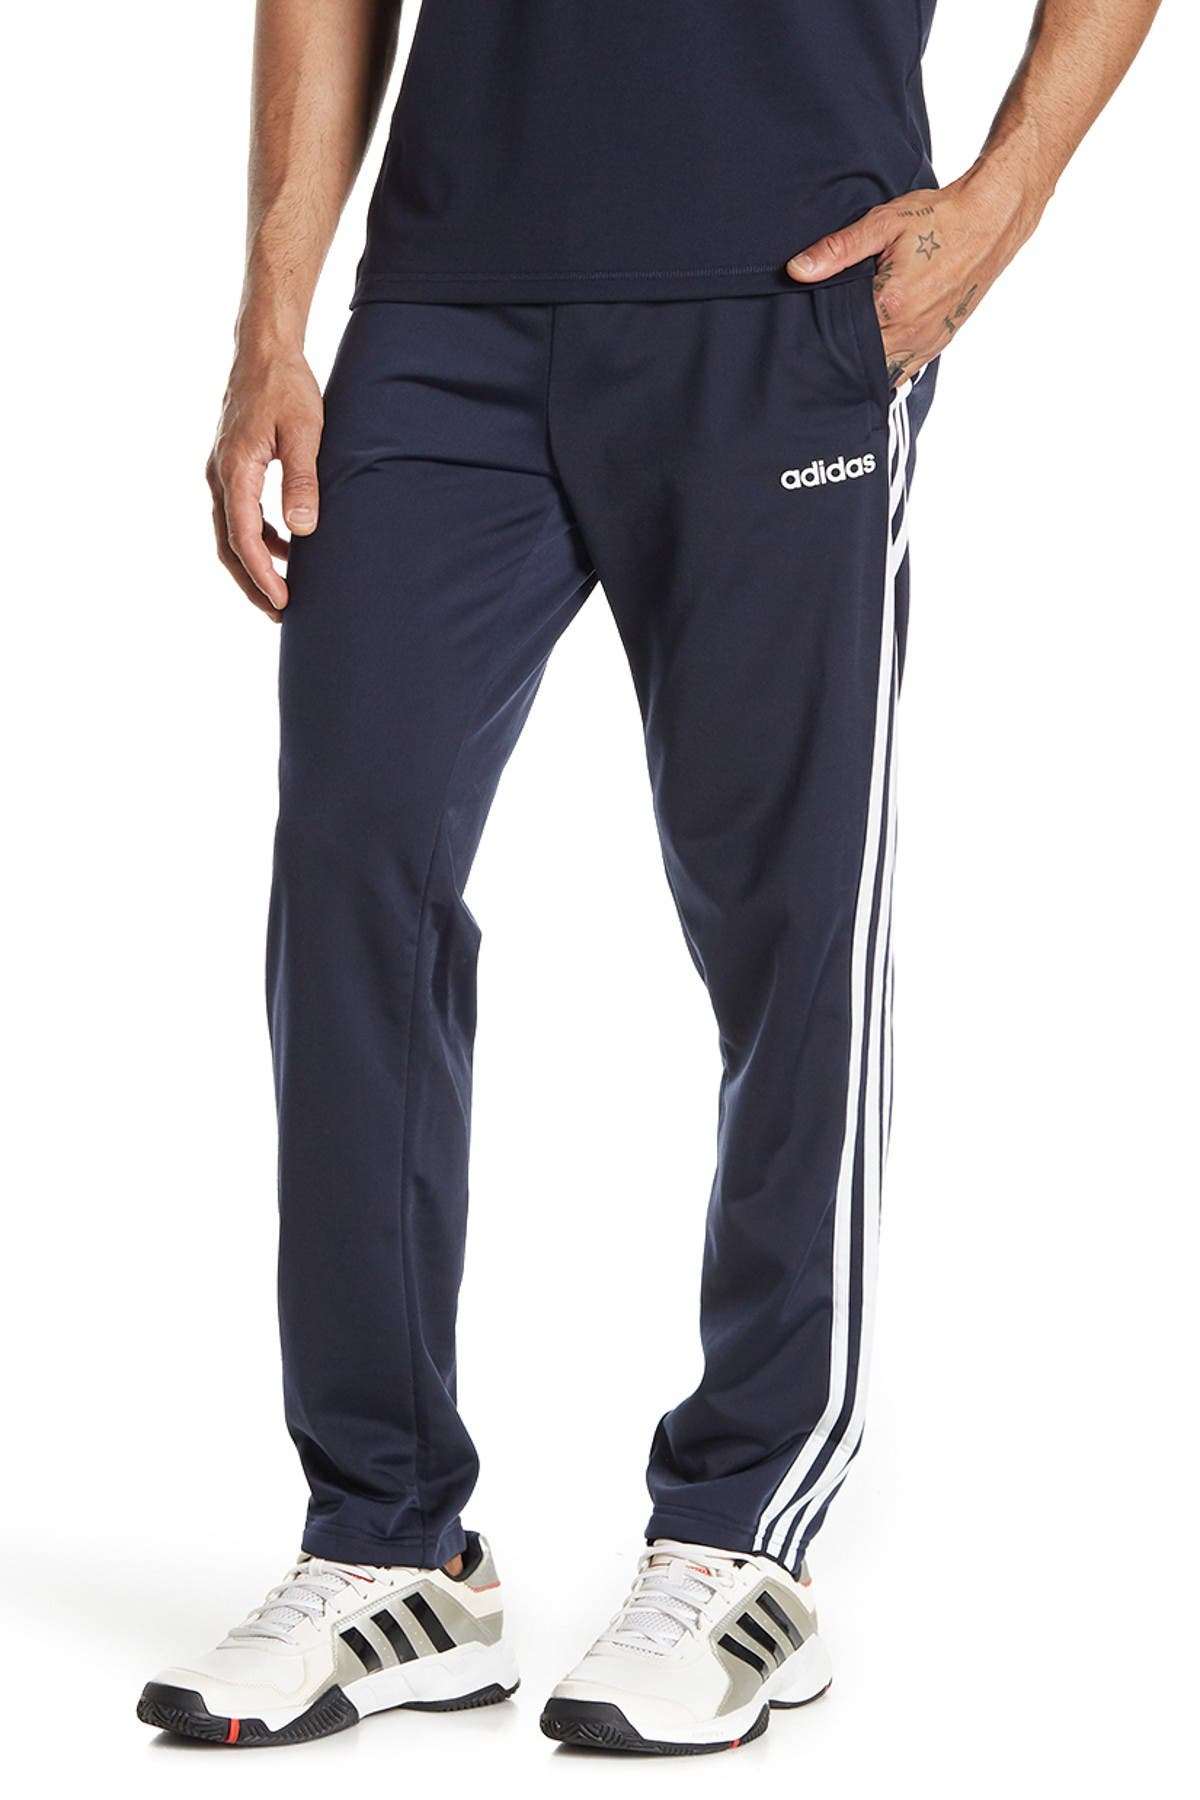 Image of adidas Essentials 3 Stripes Tapered Pants